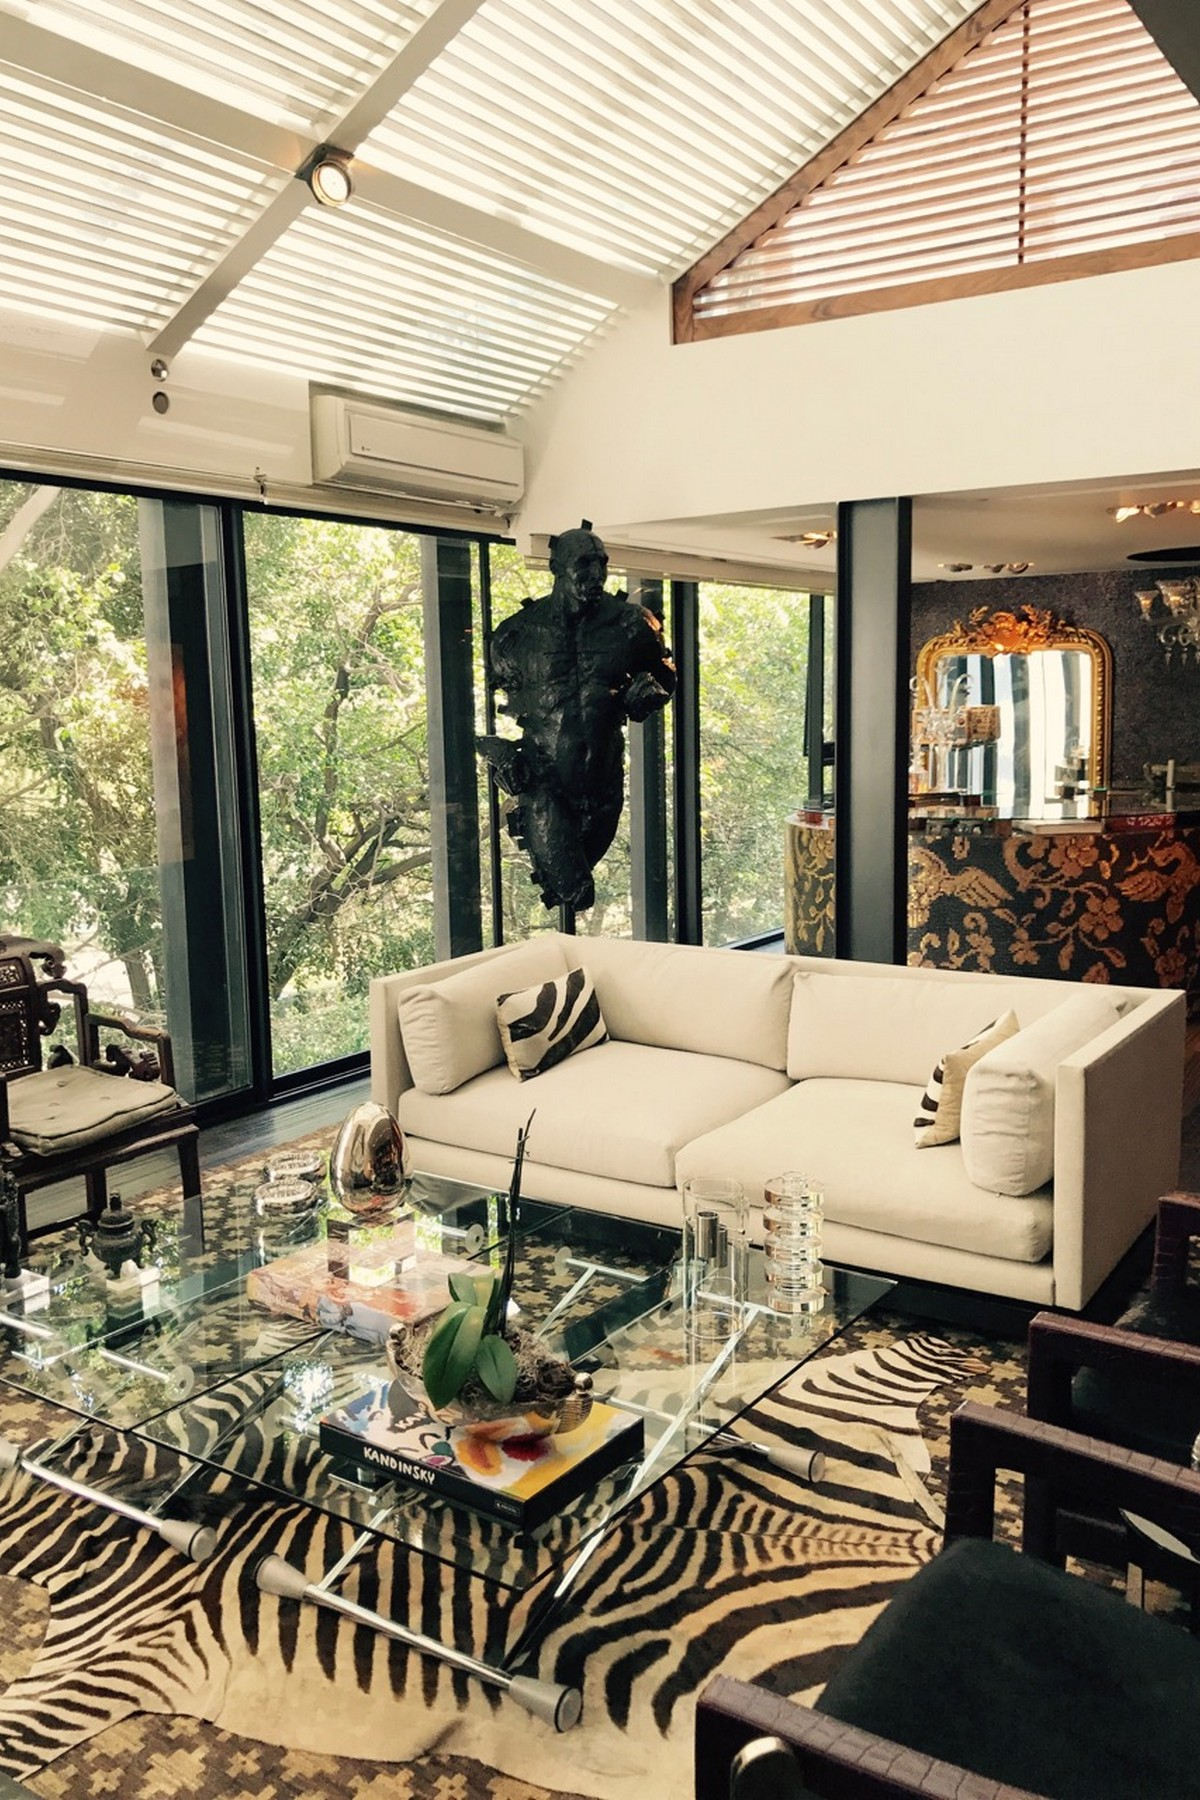 Additional photo for property listing at Pent House en Parque Lincoln Luis G. Urbina 120 Int. 3 Chapultepec Polanco Federal District, Mexico Df 11000 México